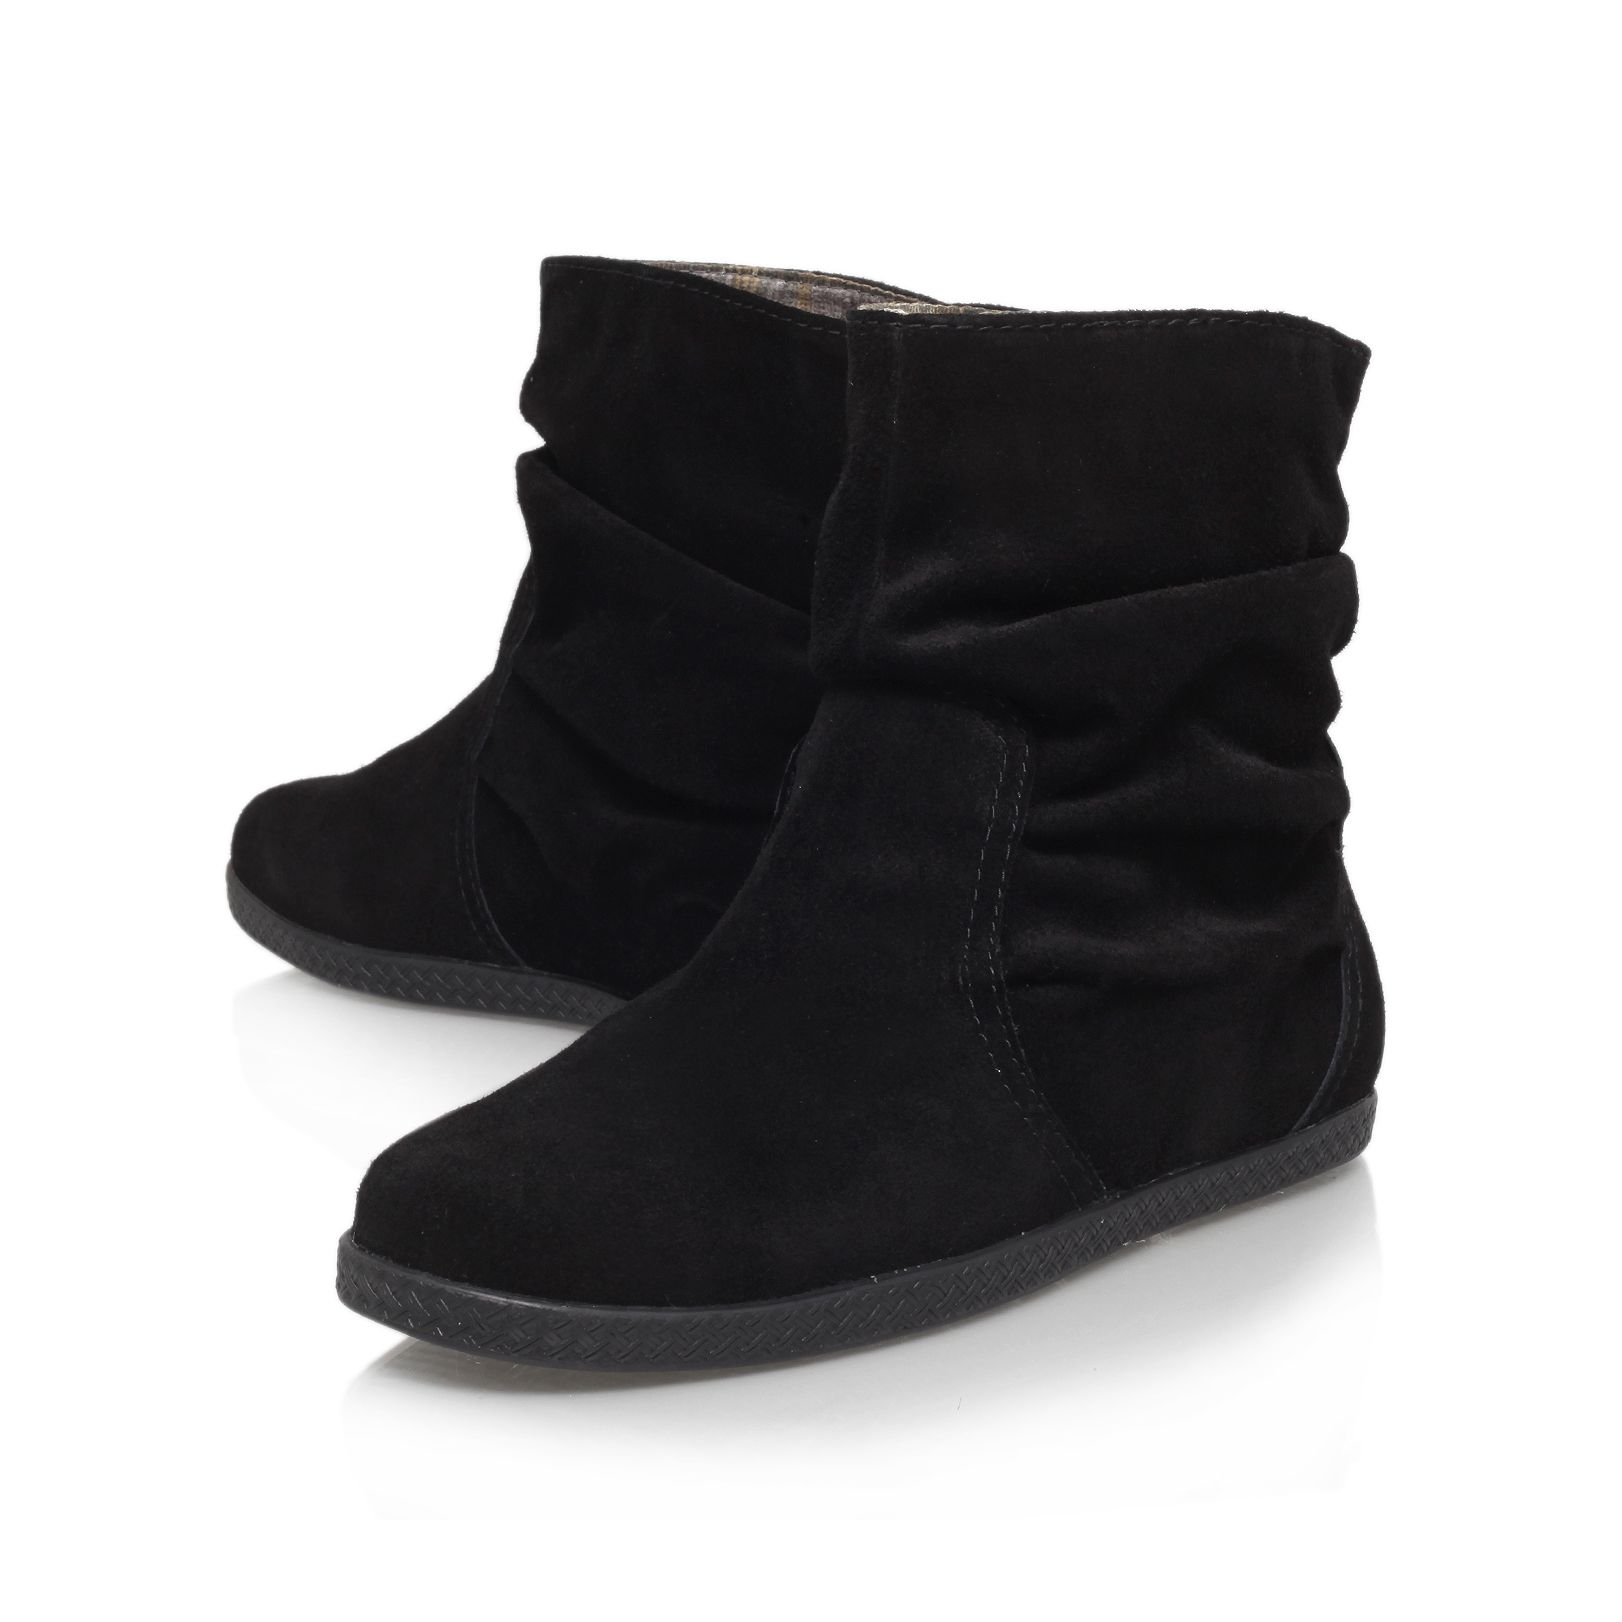 Rockinout Flat Ankle Boots